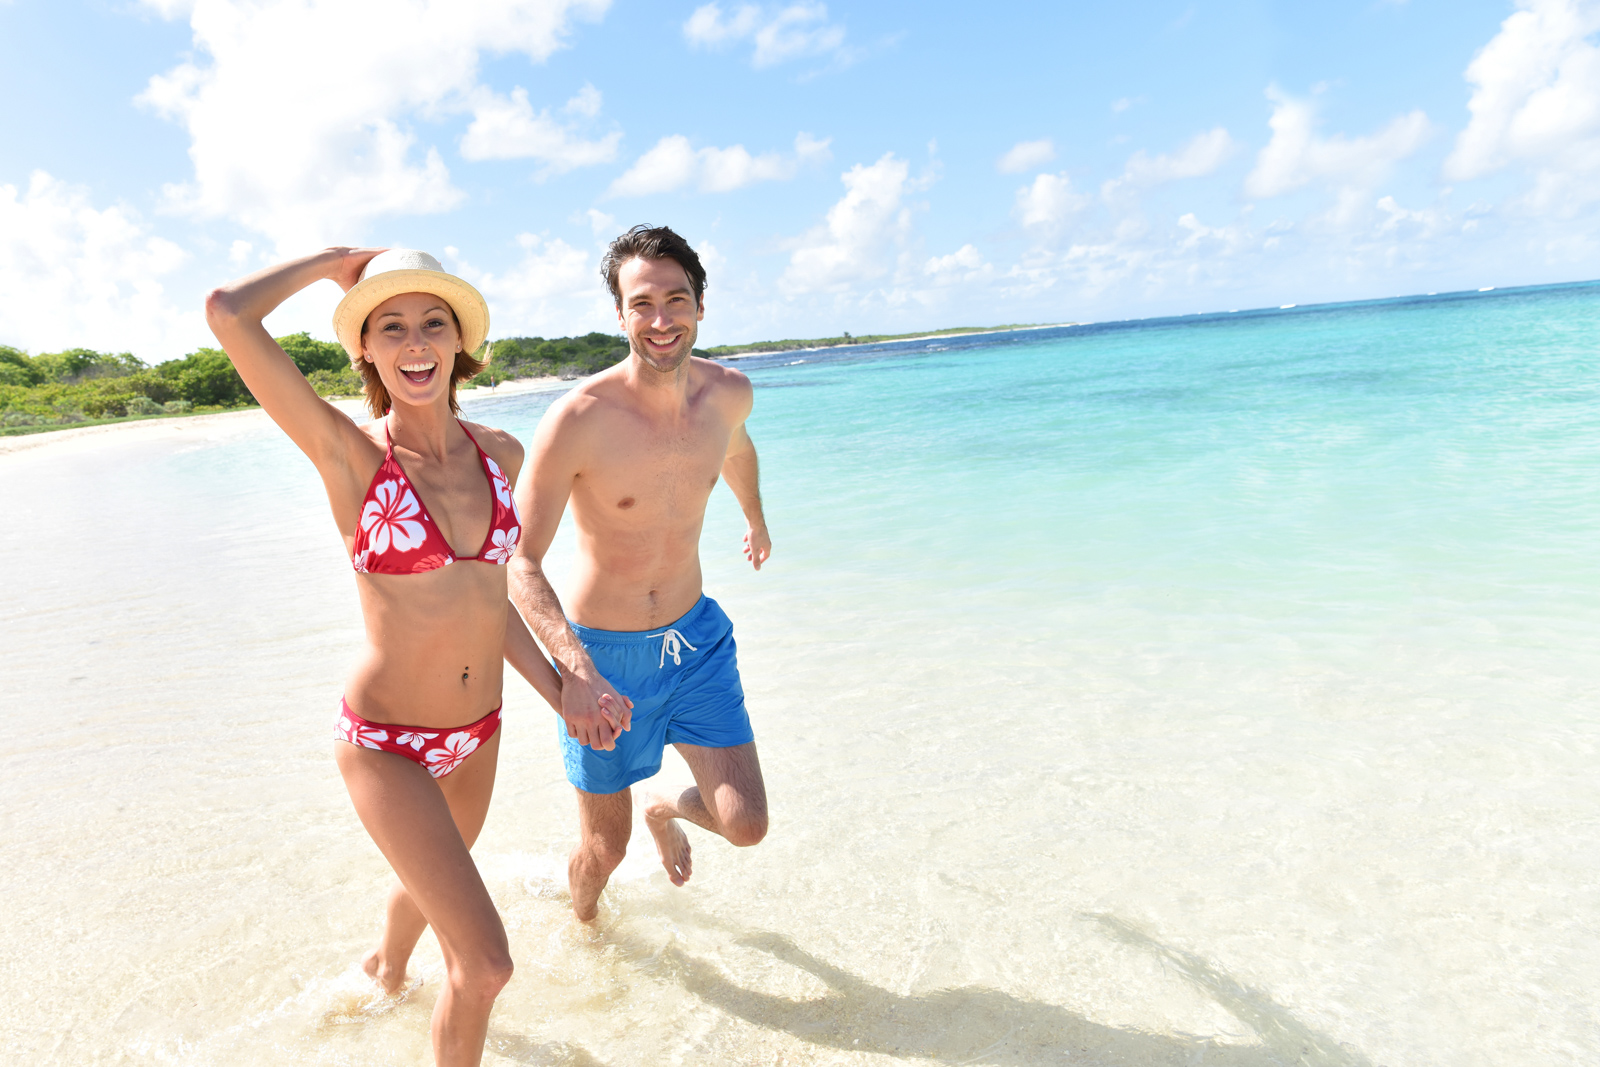 A Bahamas Day Trip can be one of the top Miami Attractions. Cheerful couple running on a white sandy beach. Your guide for all the top Miami attractions and best things to do in Miami. There are Plenty of tourist attractions in Miami Florida. This Guide presented by Flying and Travel.